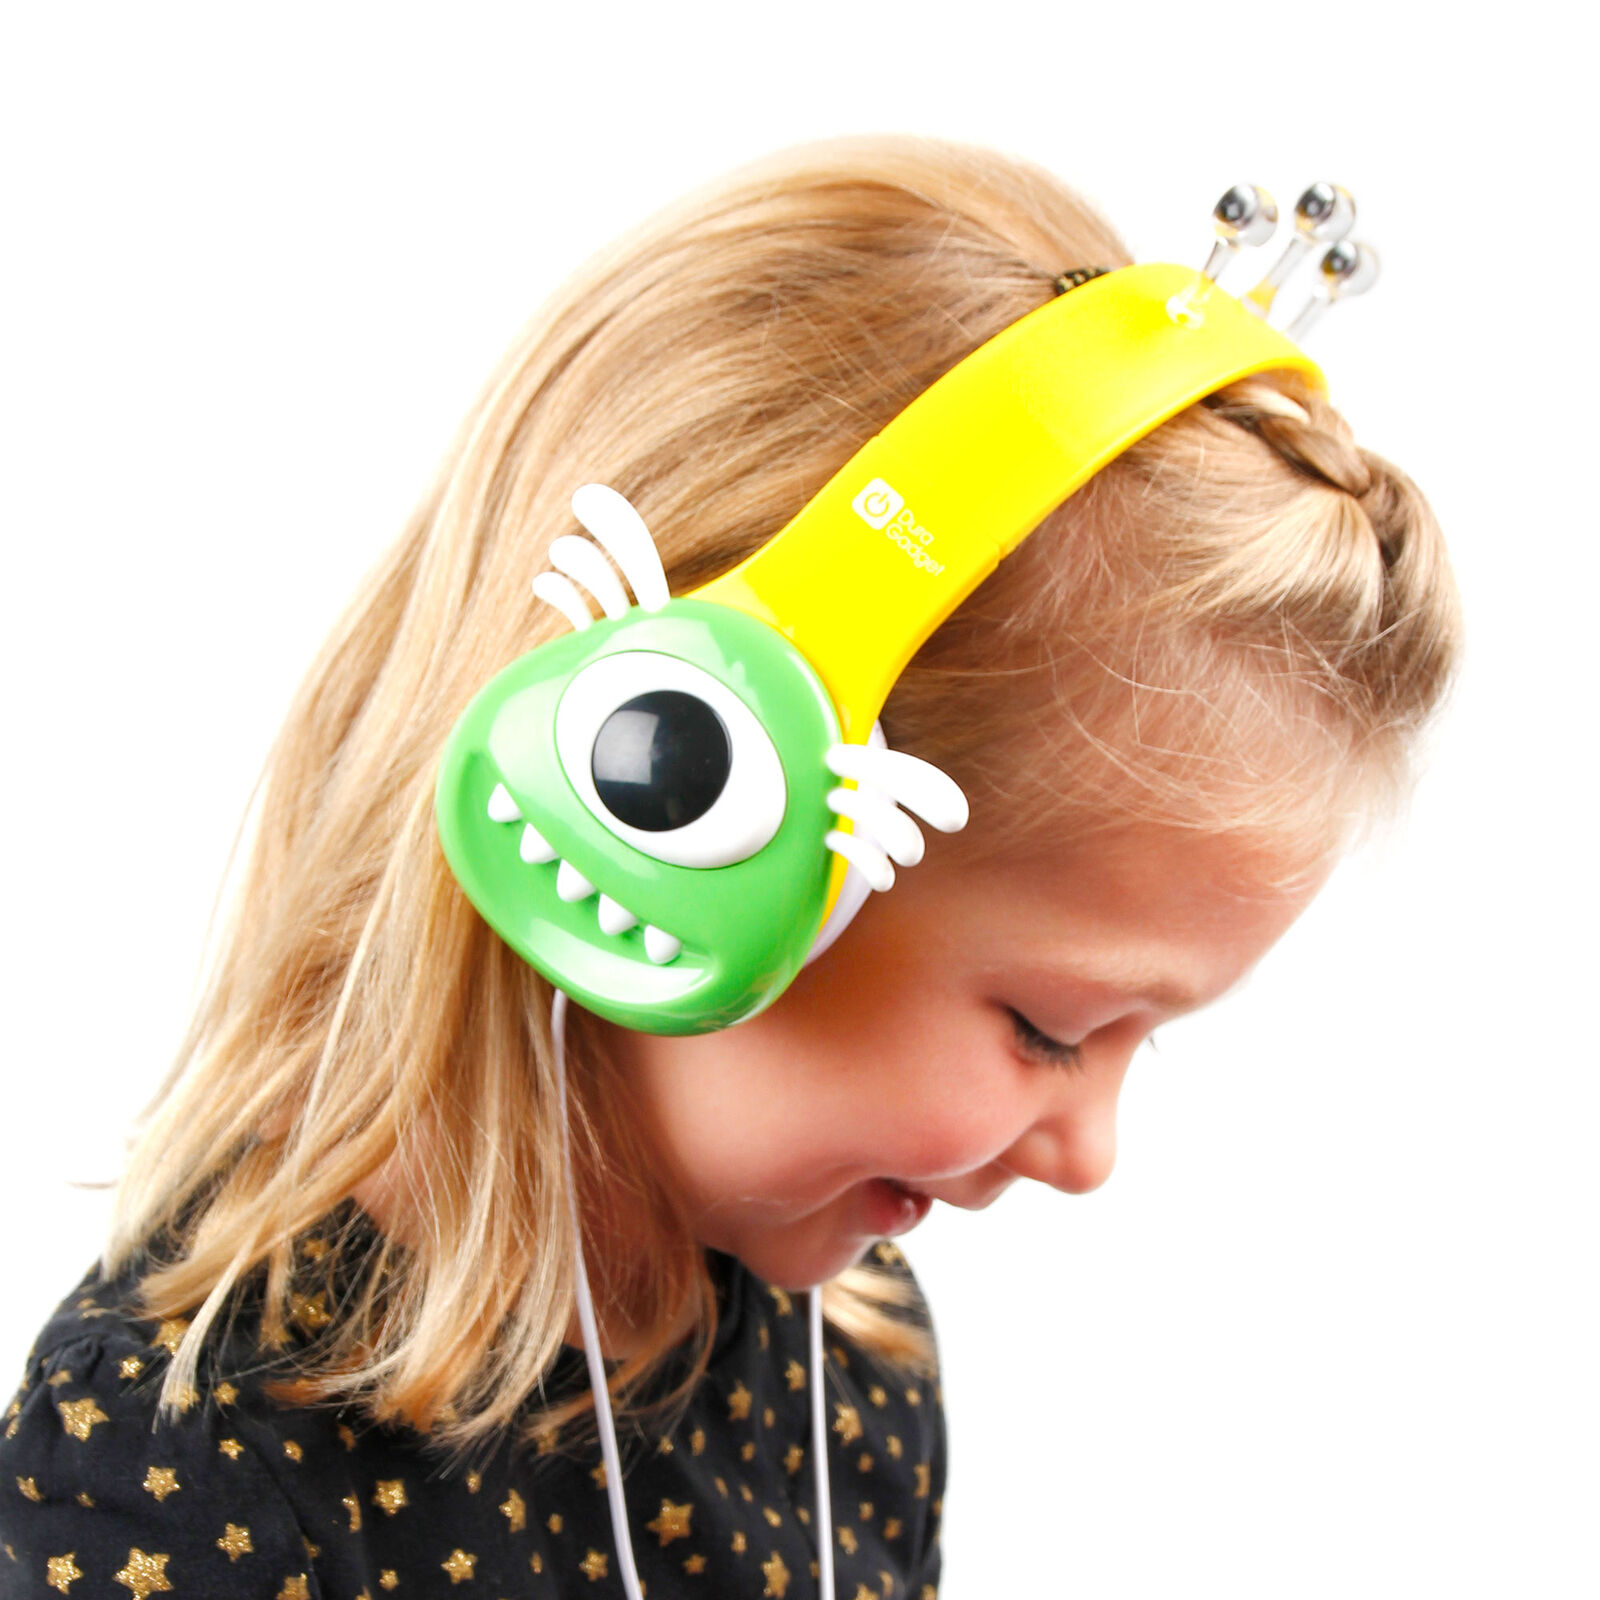 Kids Monster Headphones For Kurio Tablets (7 &Roid, 4x,7x,7s, 10s, Tab Xl,touch)